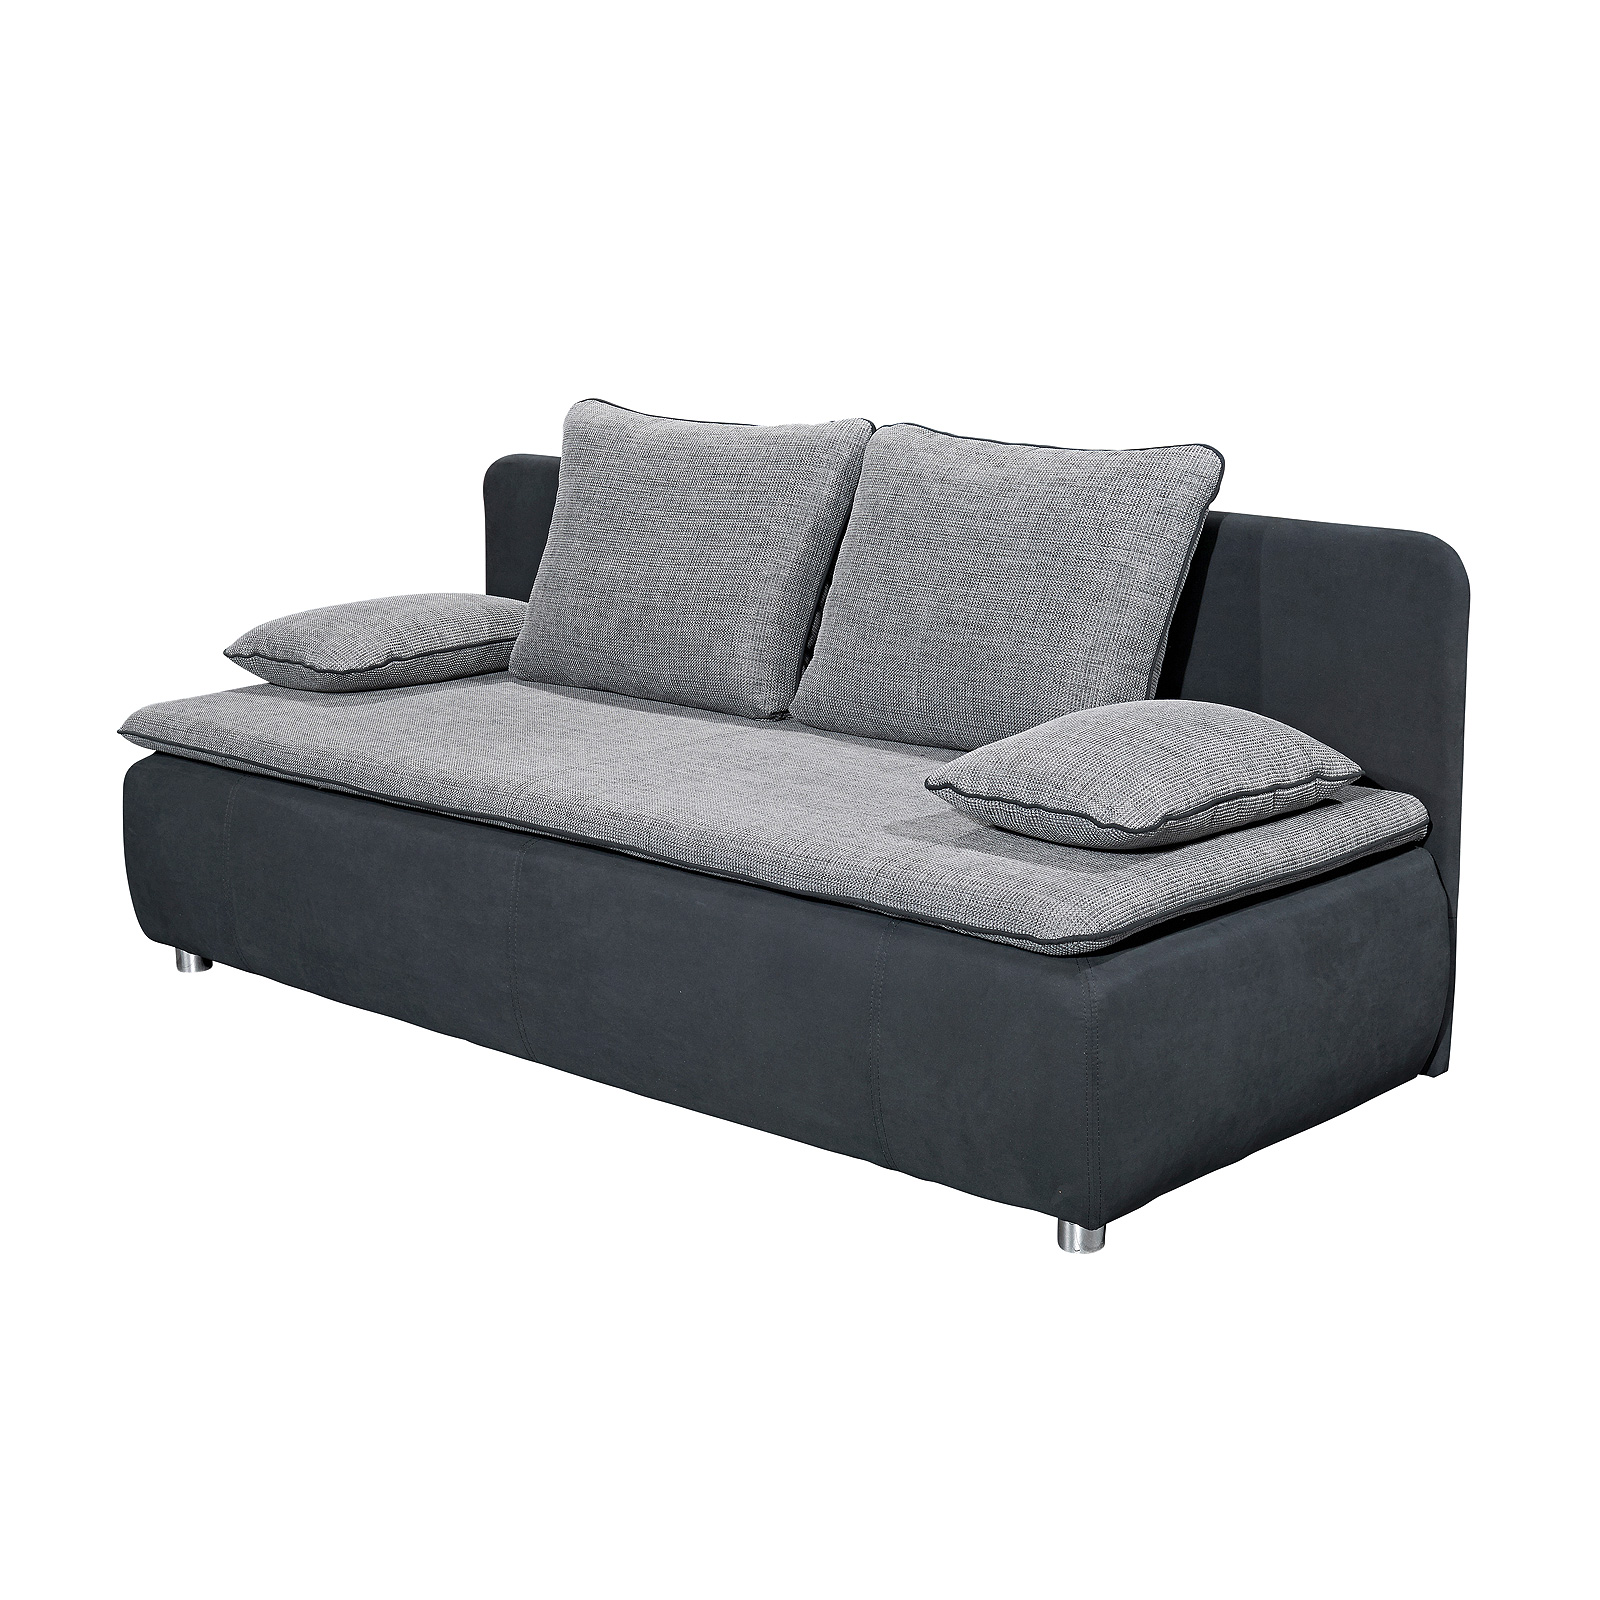 schlafsofa sonja sofa funktionssofa in schwarz und anthrazit mit topper. Black Bedroom Furniture Sets. Home Design Ideas